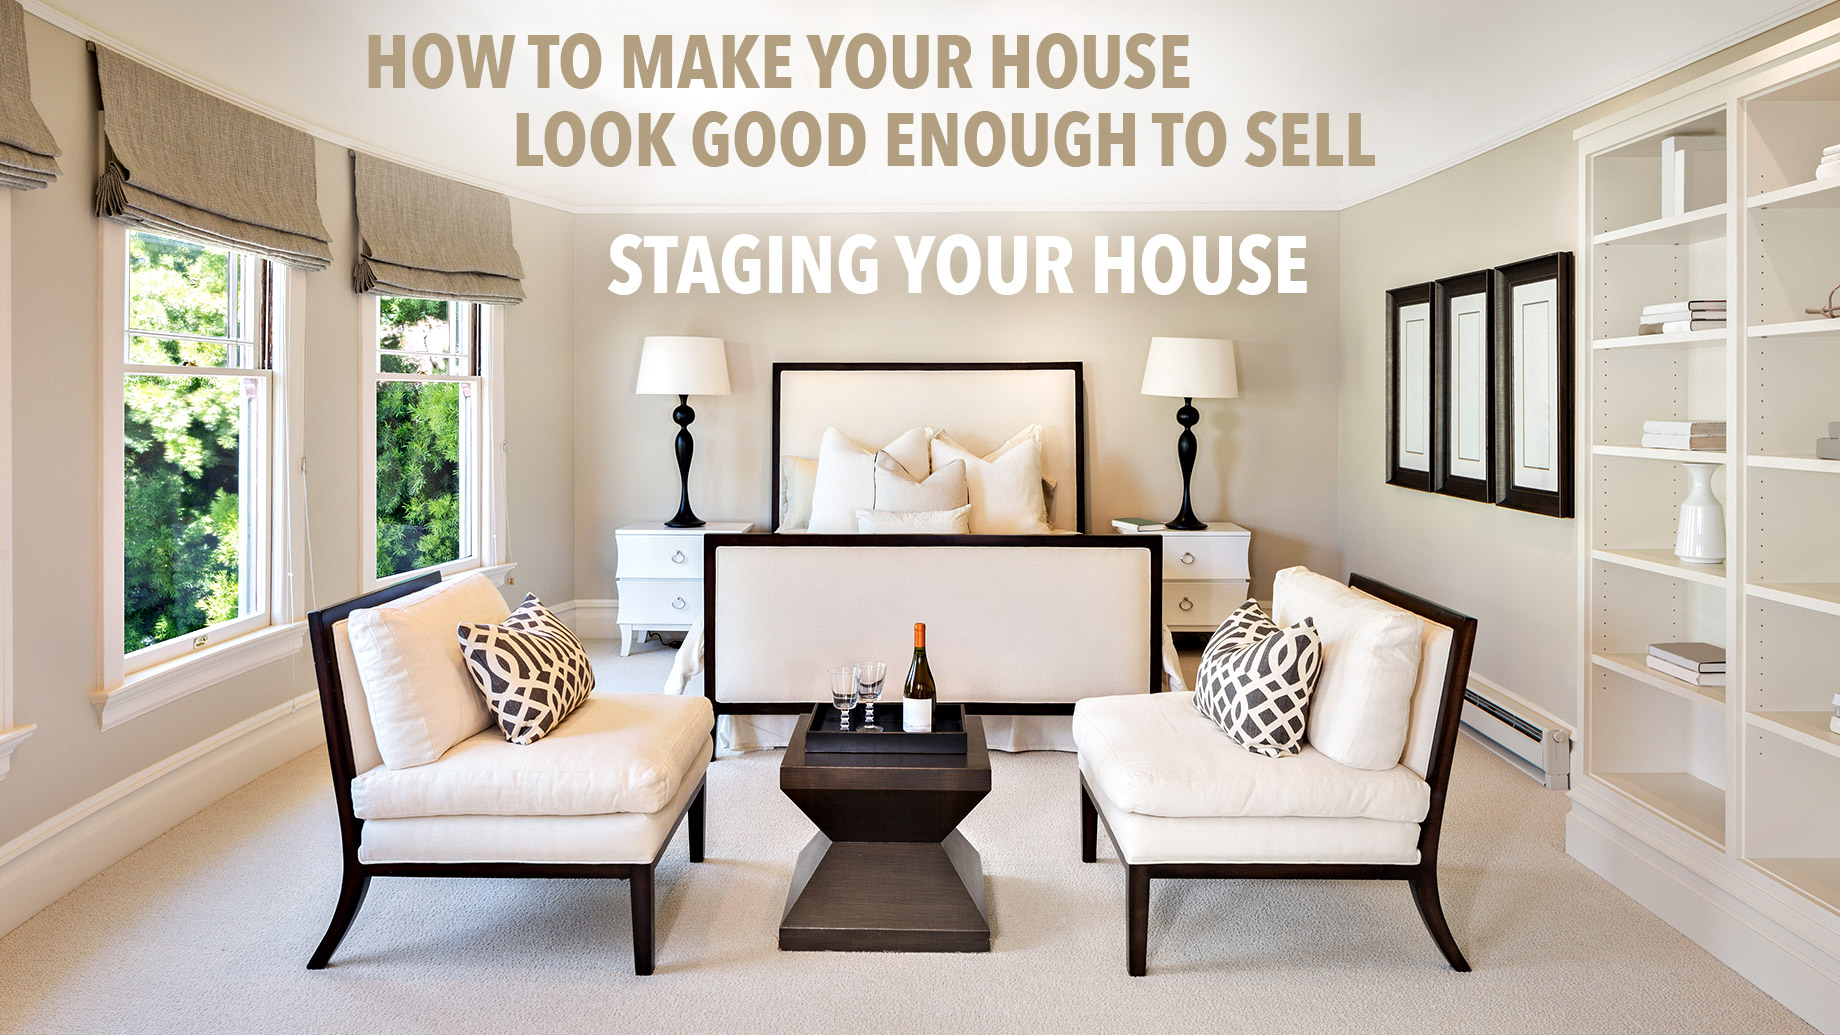 Staging Your House - How to Make Your House Look Good Enough to Sell